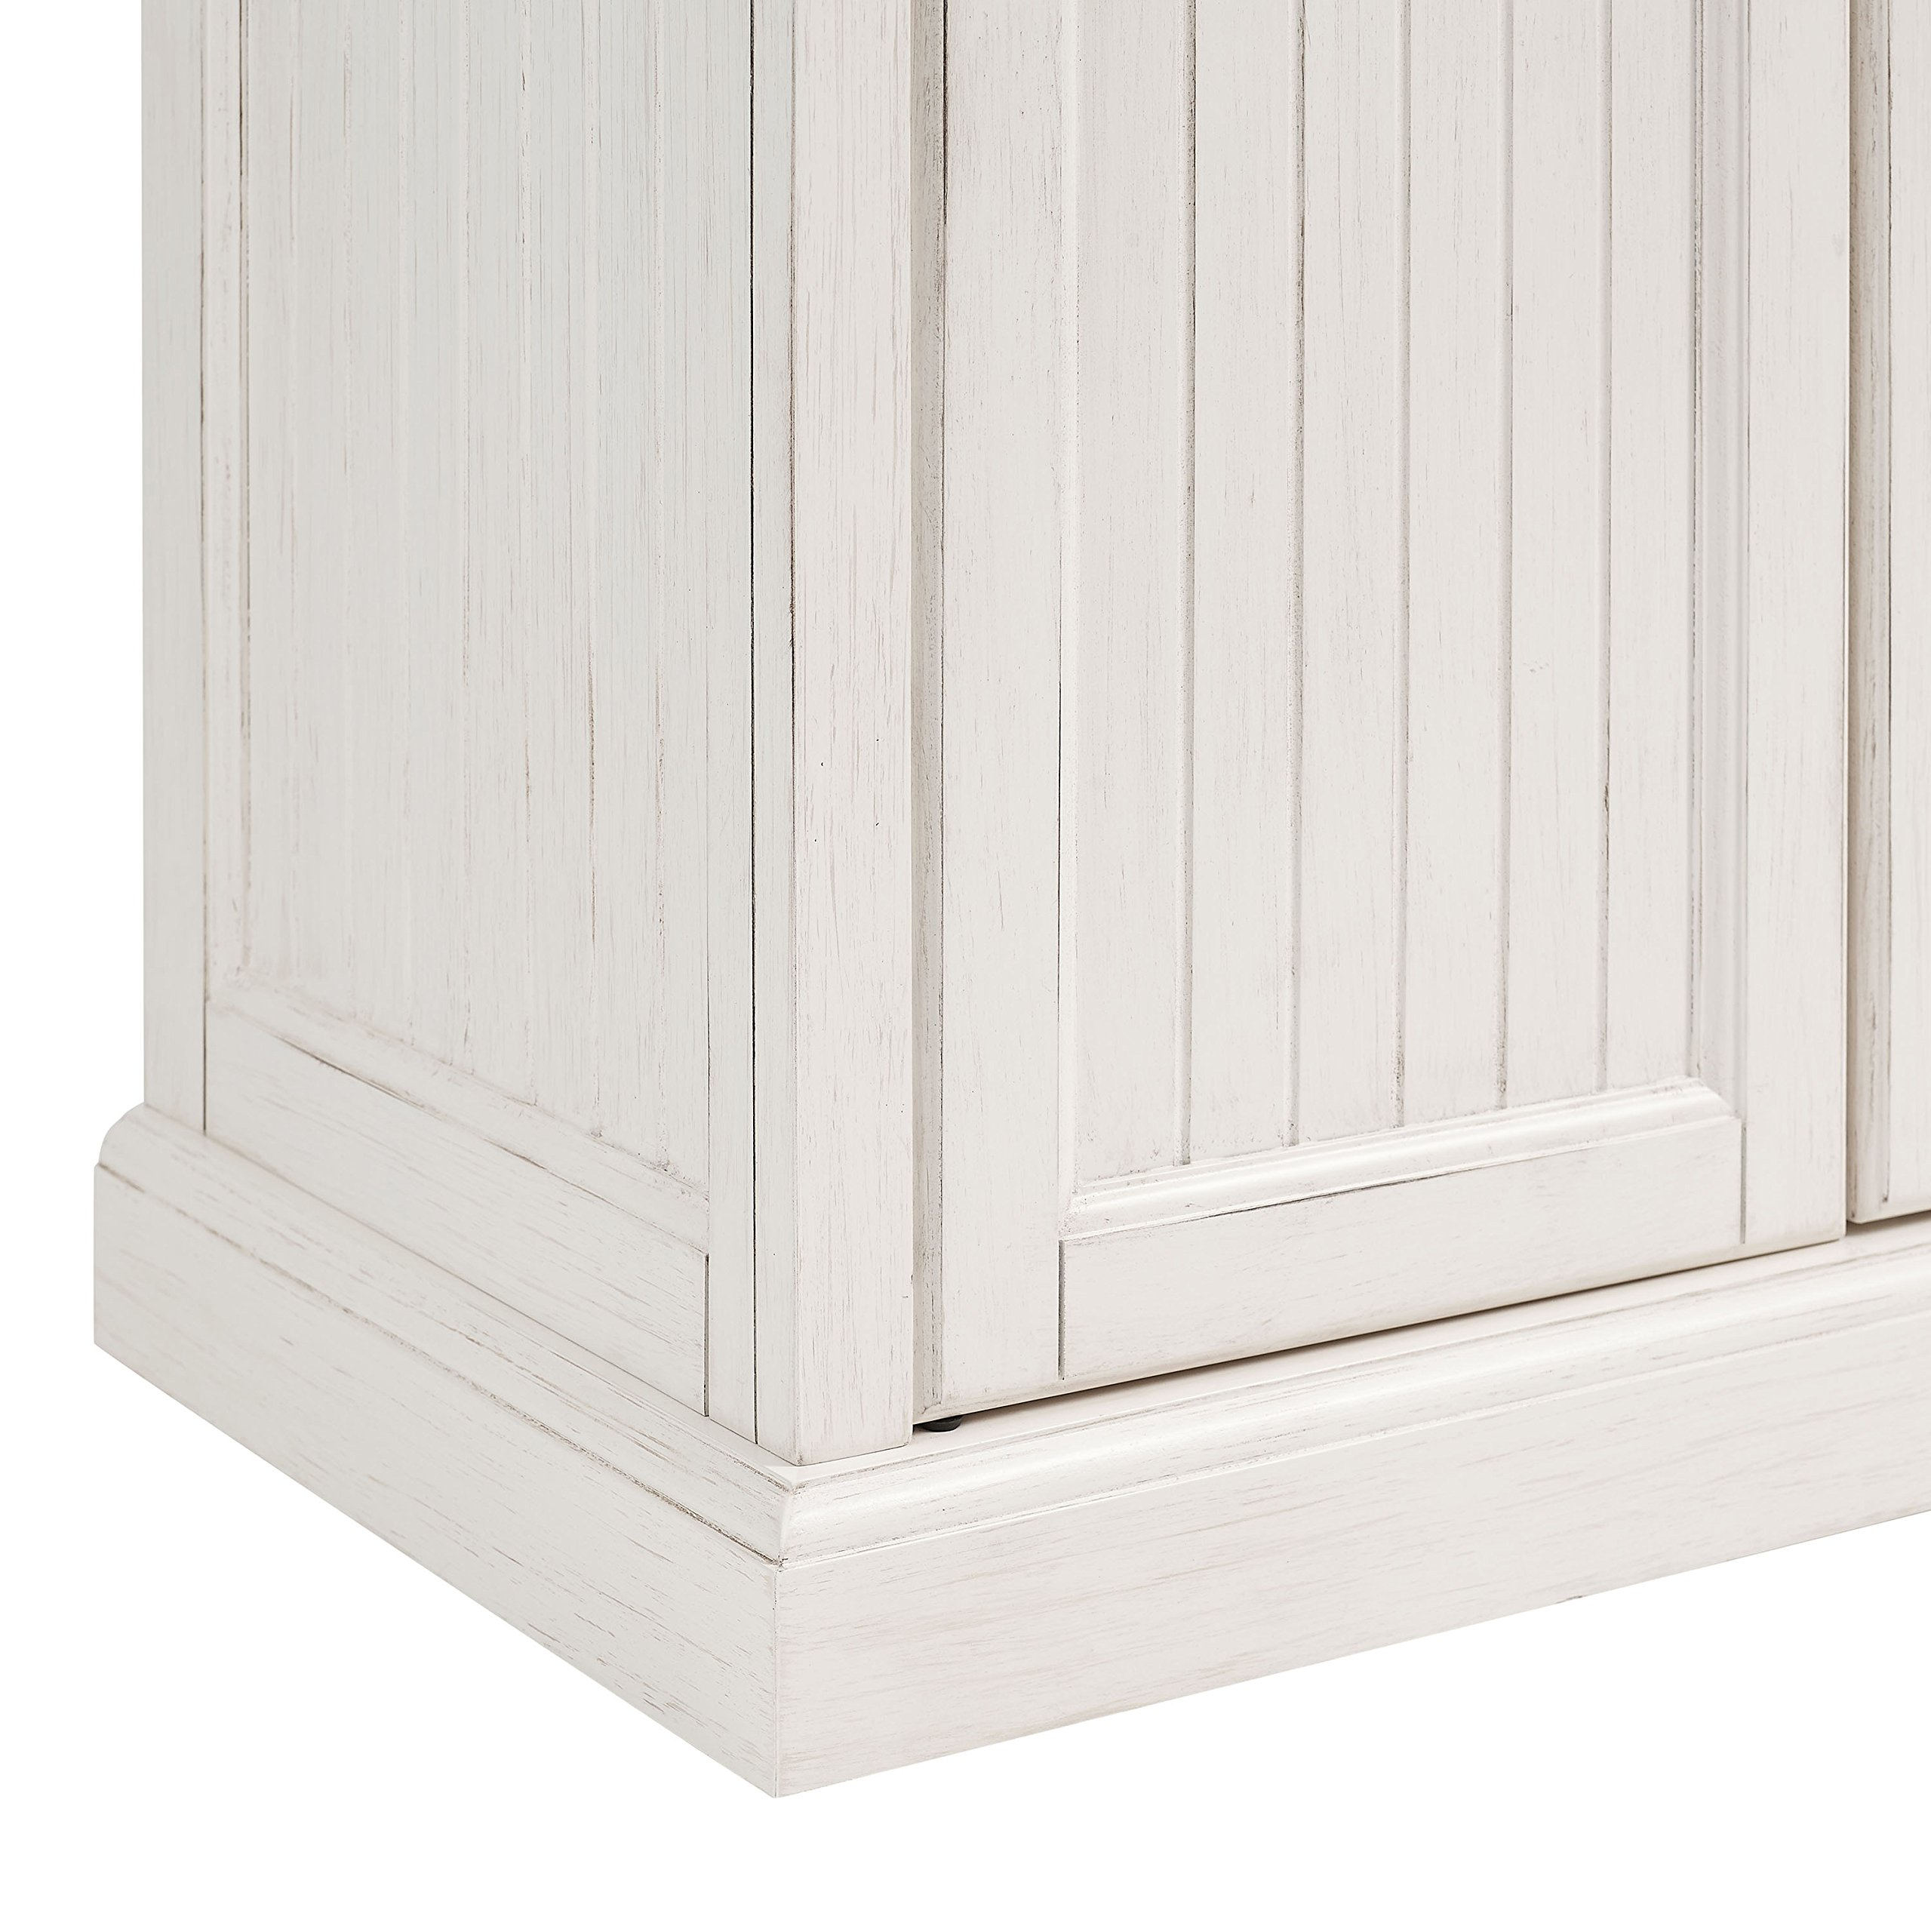 Crosley Furniture Seaside Kitchen Pantry Cabinet - Distressed White by Crosley Furniture (Image #10)